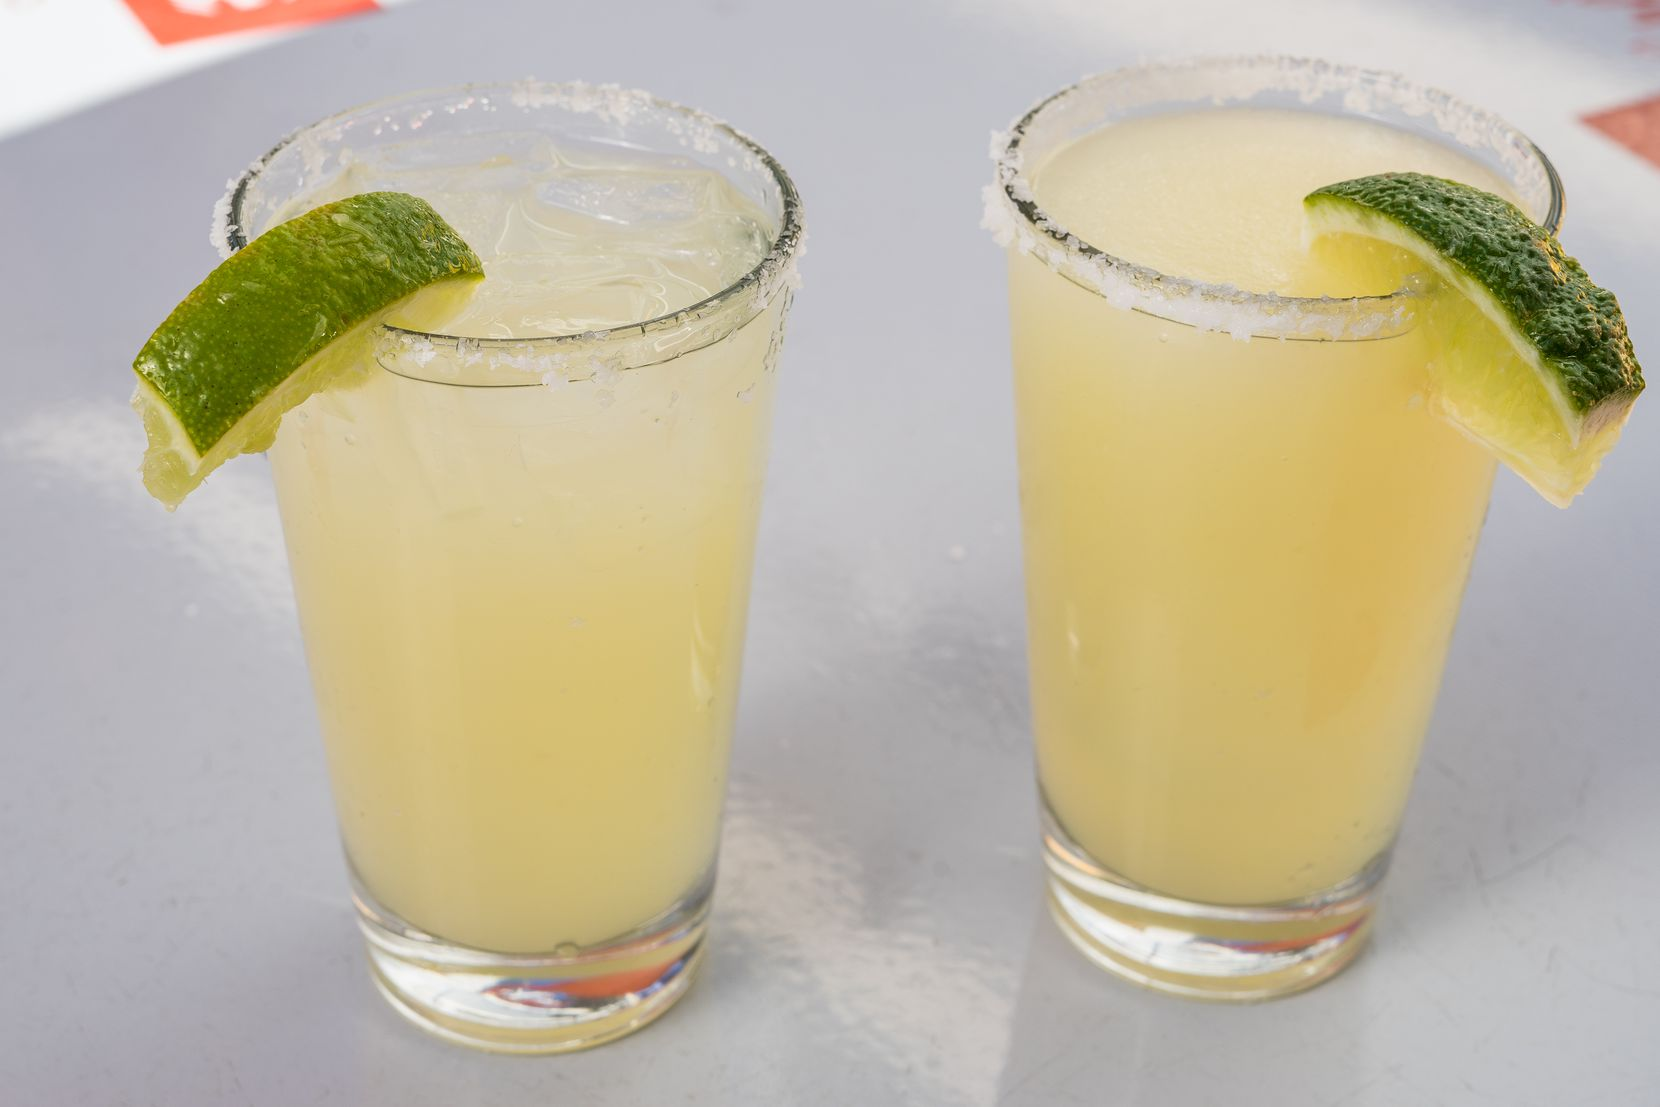 El Fenix will serve $1 8-ounce margaritas in celebration of National Margarita Day on Feb. 22, 2020.